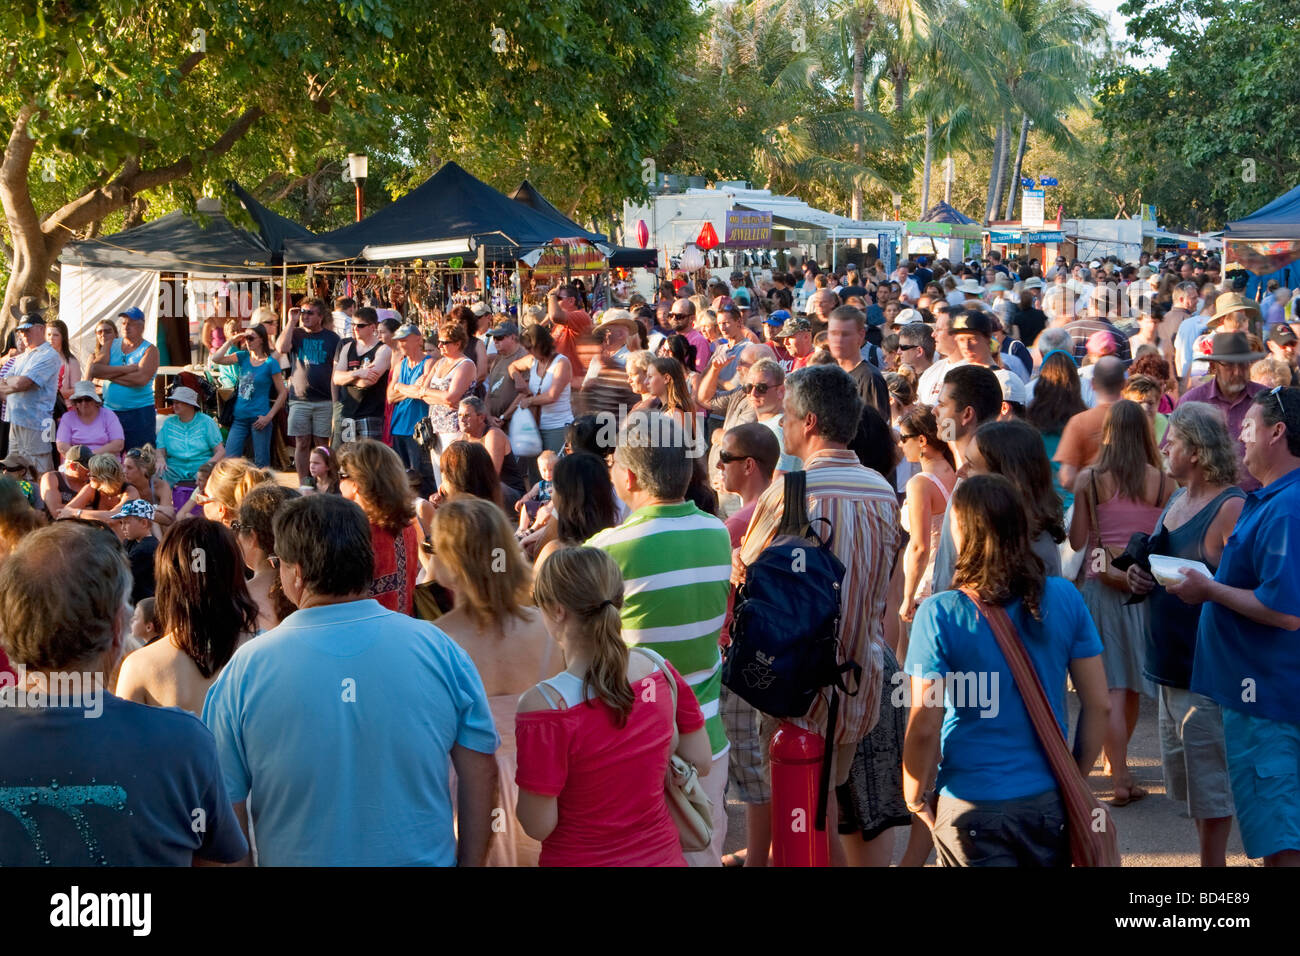 Crowds of people at Mindil Beach Markets in Darwin, Australia - Stock Image